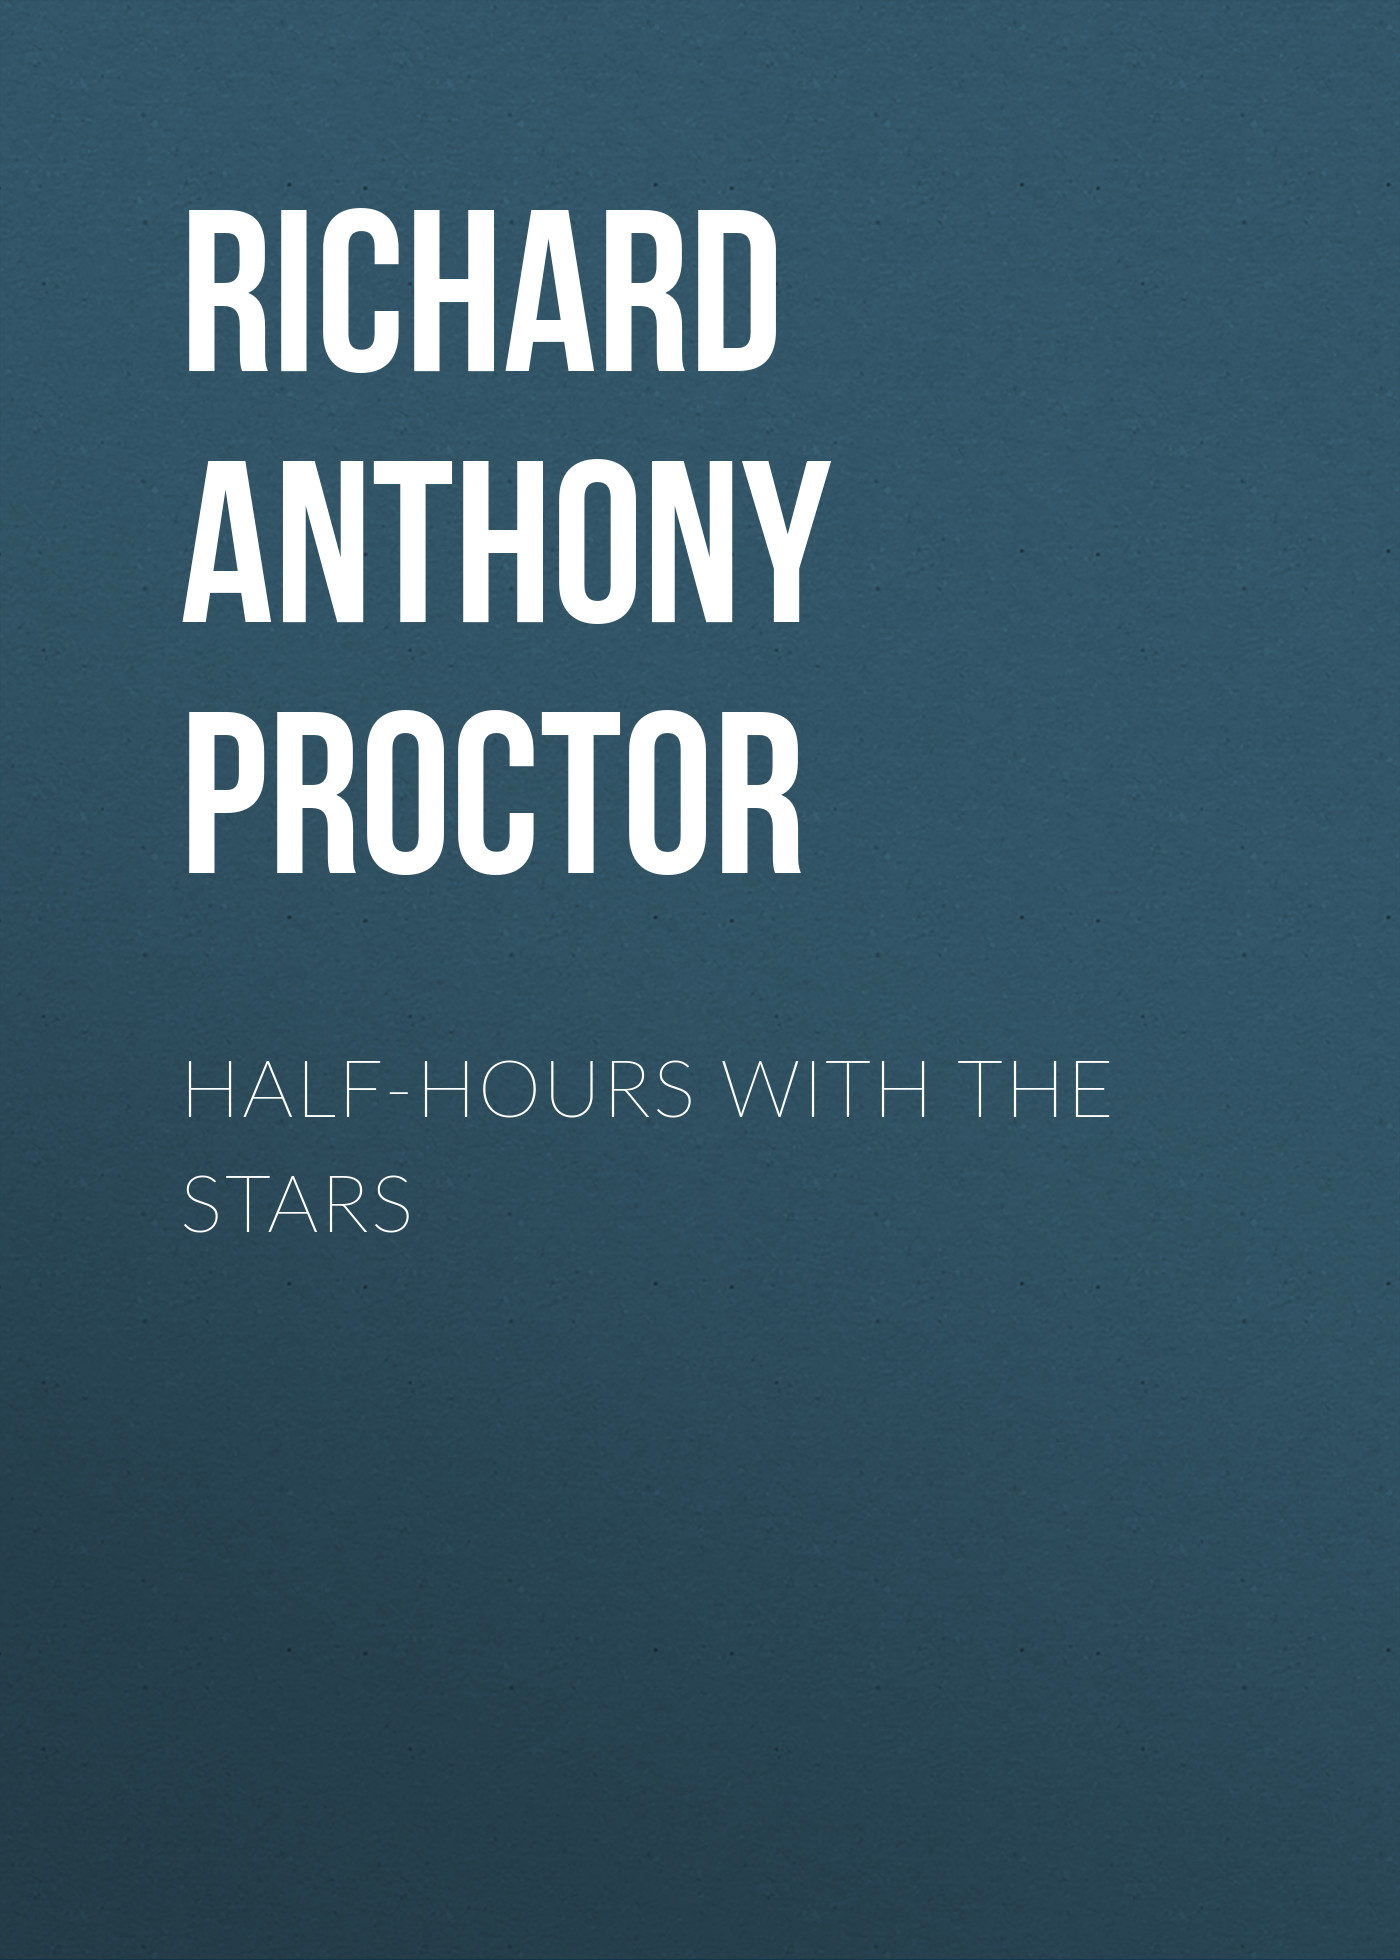 Richard Anthony Proctor Half-Hours with the Stars various half hours with great story tellers